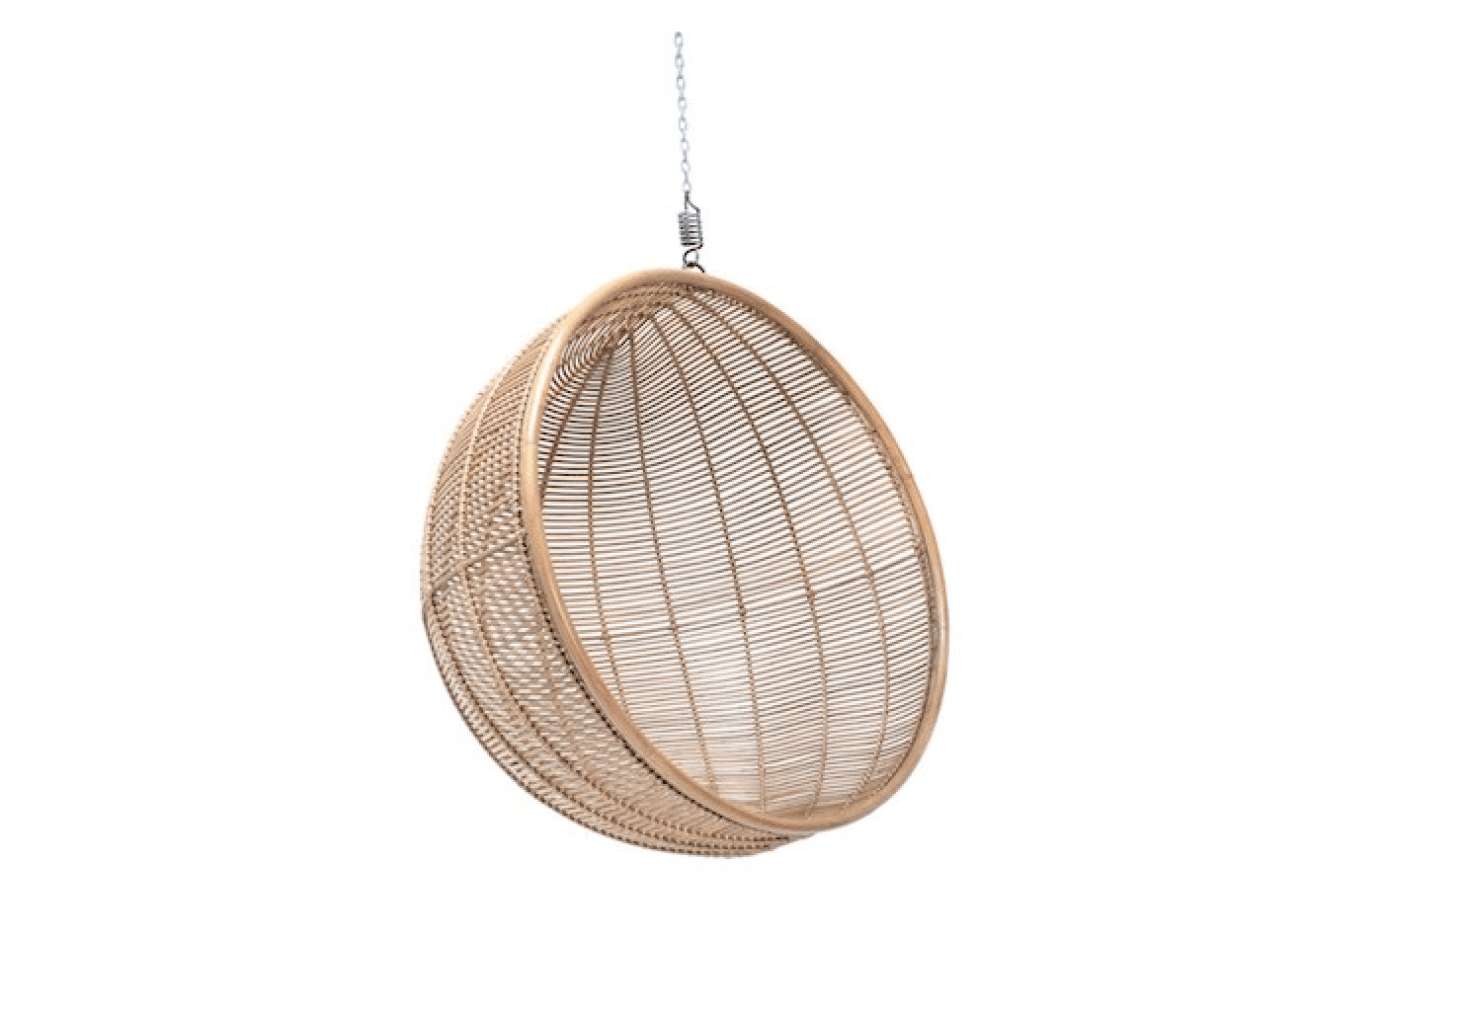 A Natural Hanging Rattan Bowl Chair Is £540 From Out There Interiors.